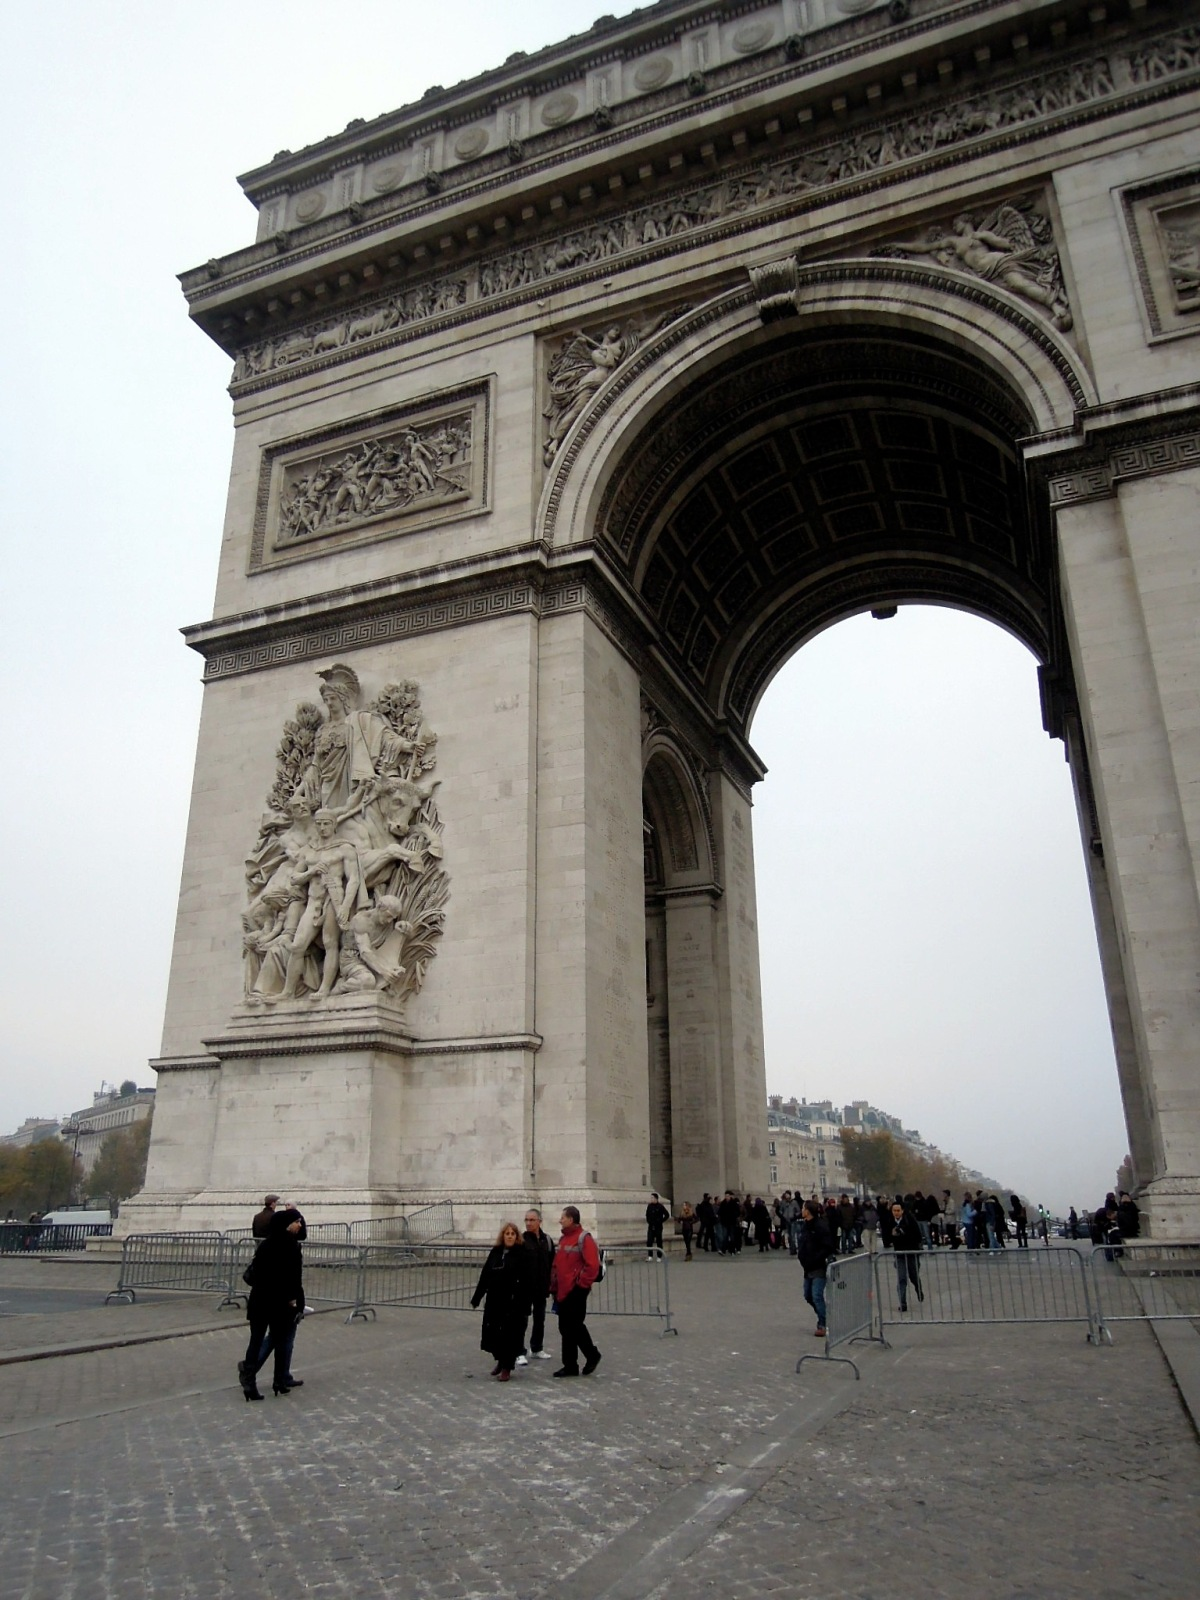 Arc de Triomphe from standing close to it